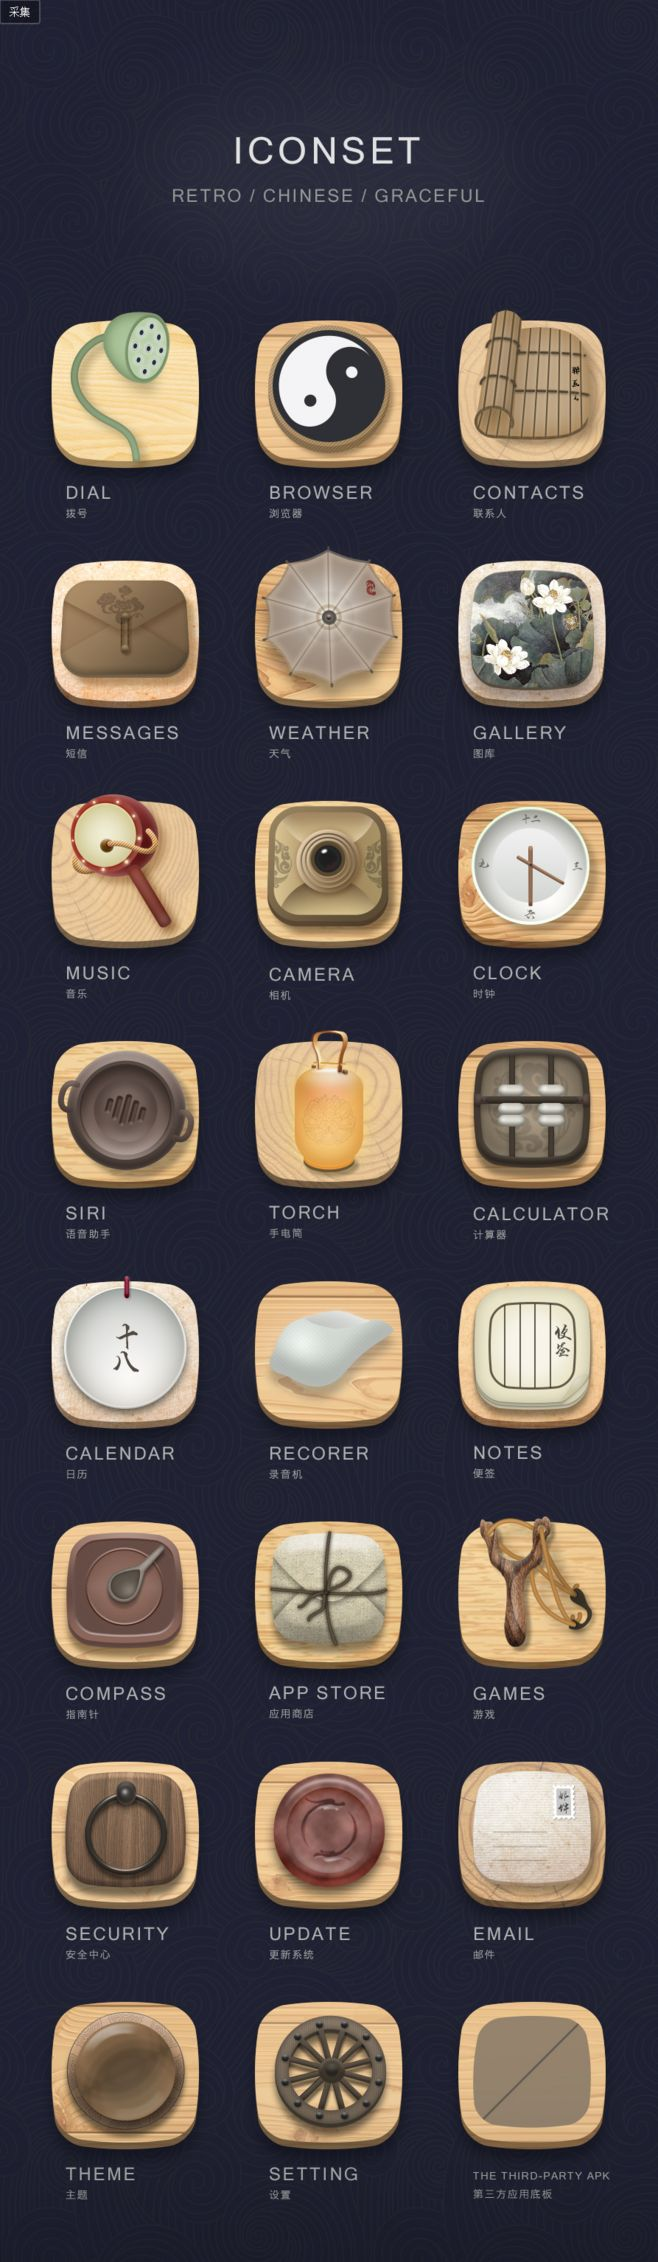 GUI 395 best icons images on Pinterest